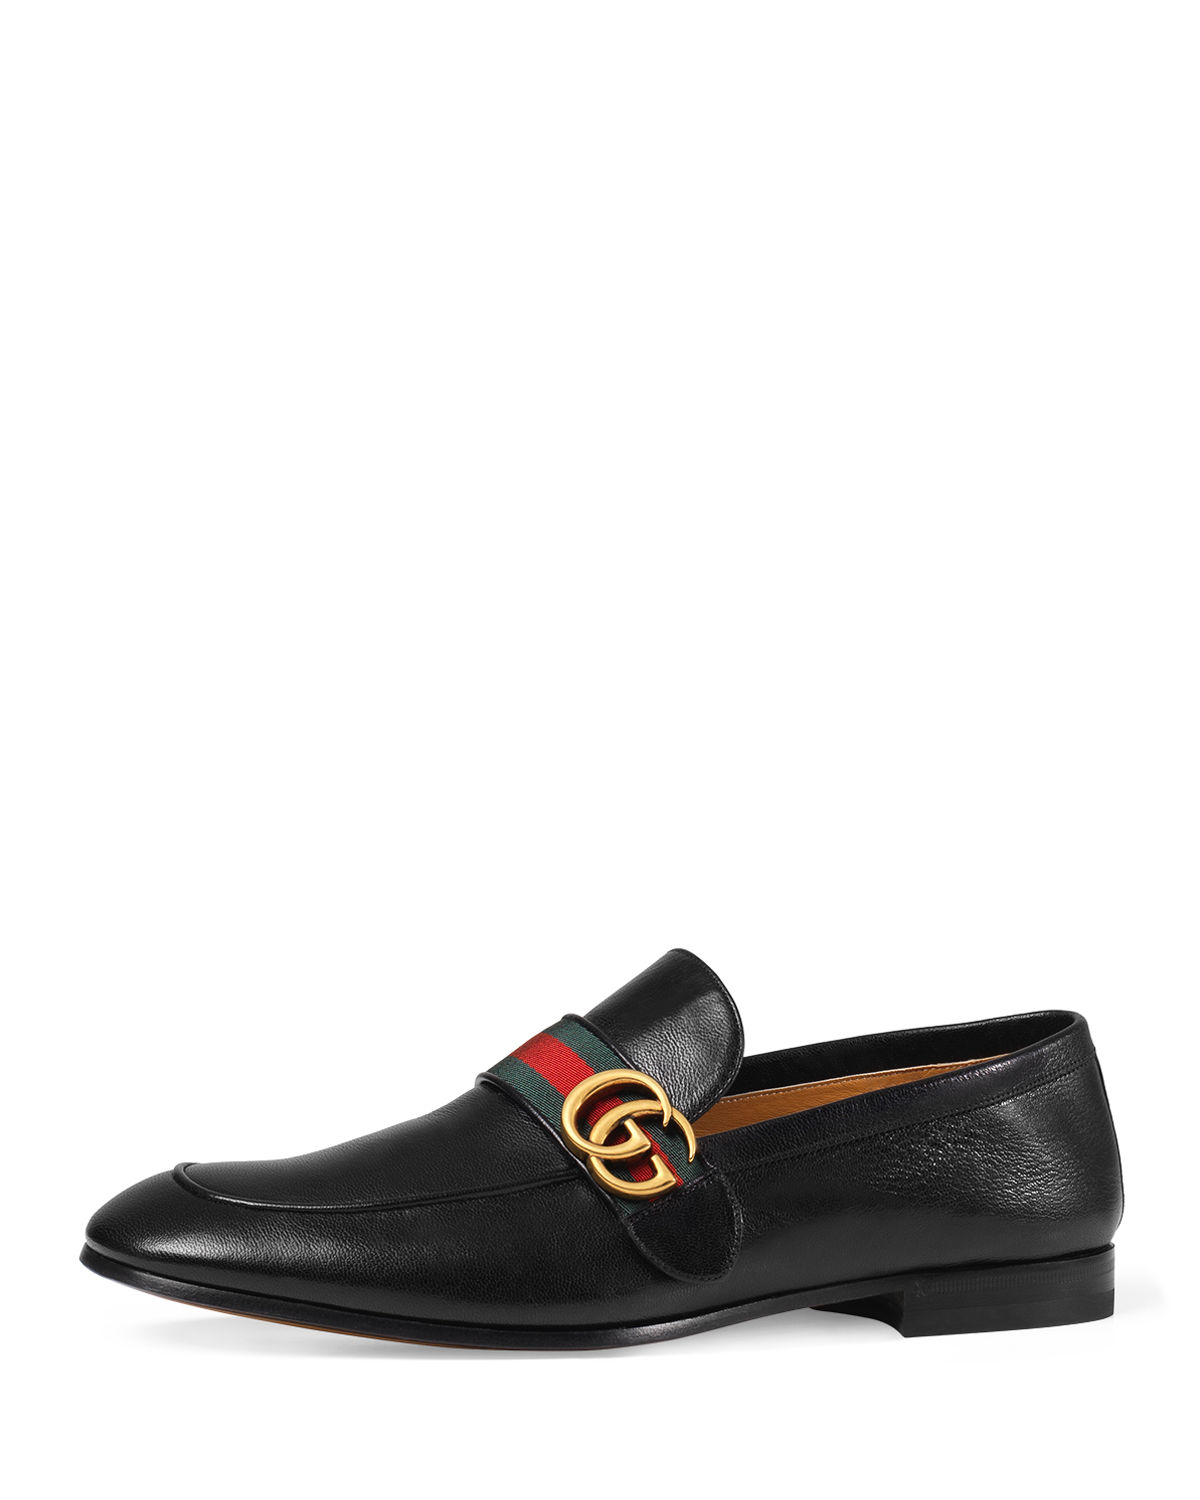 98b4914c2076 Gucci Men s Donnie Web Leather Loafers